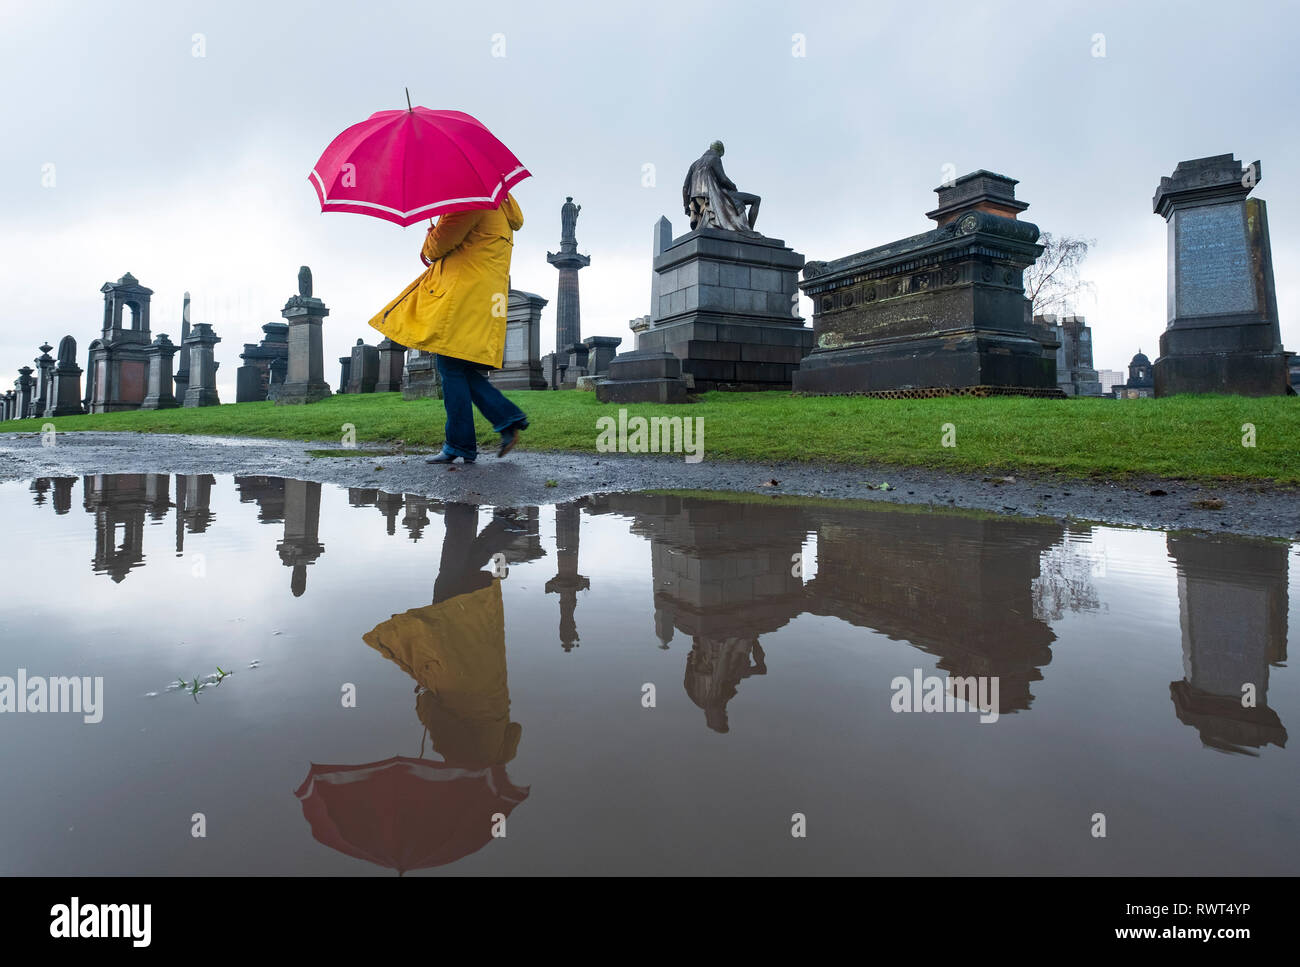 Woman in yellow coat and red umbrella reflected in puddle walking in Necropolis cemetery in Glasgow, Scotland, UK - Stock Image